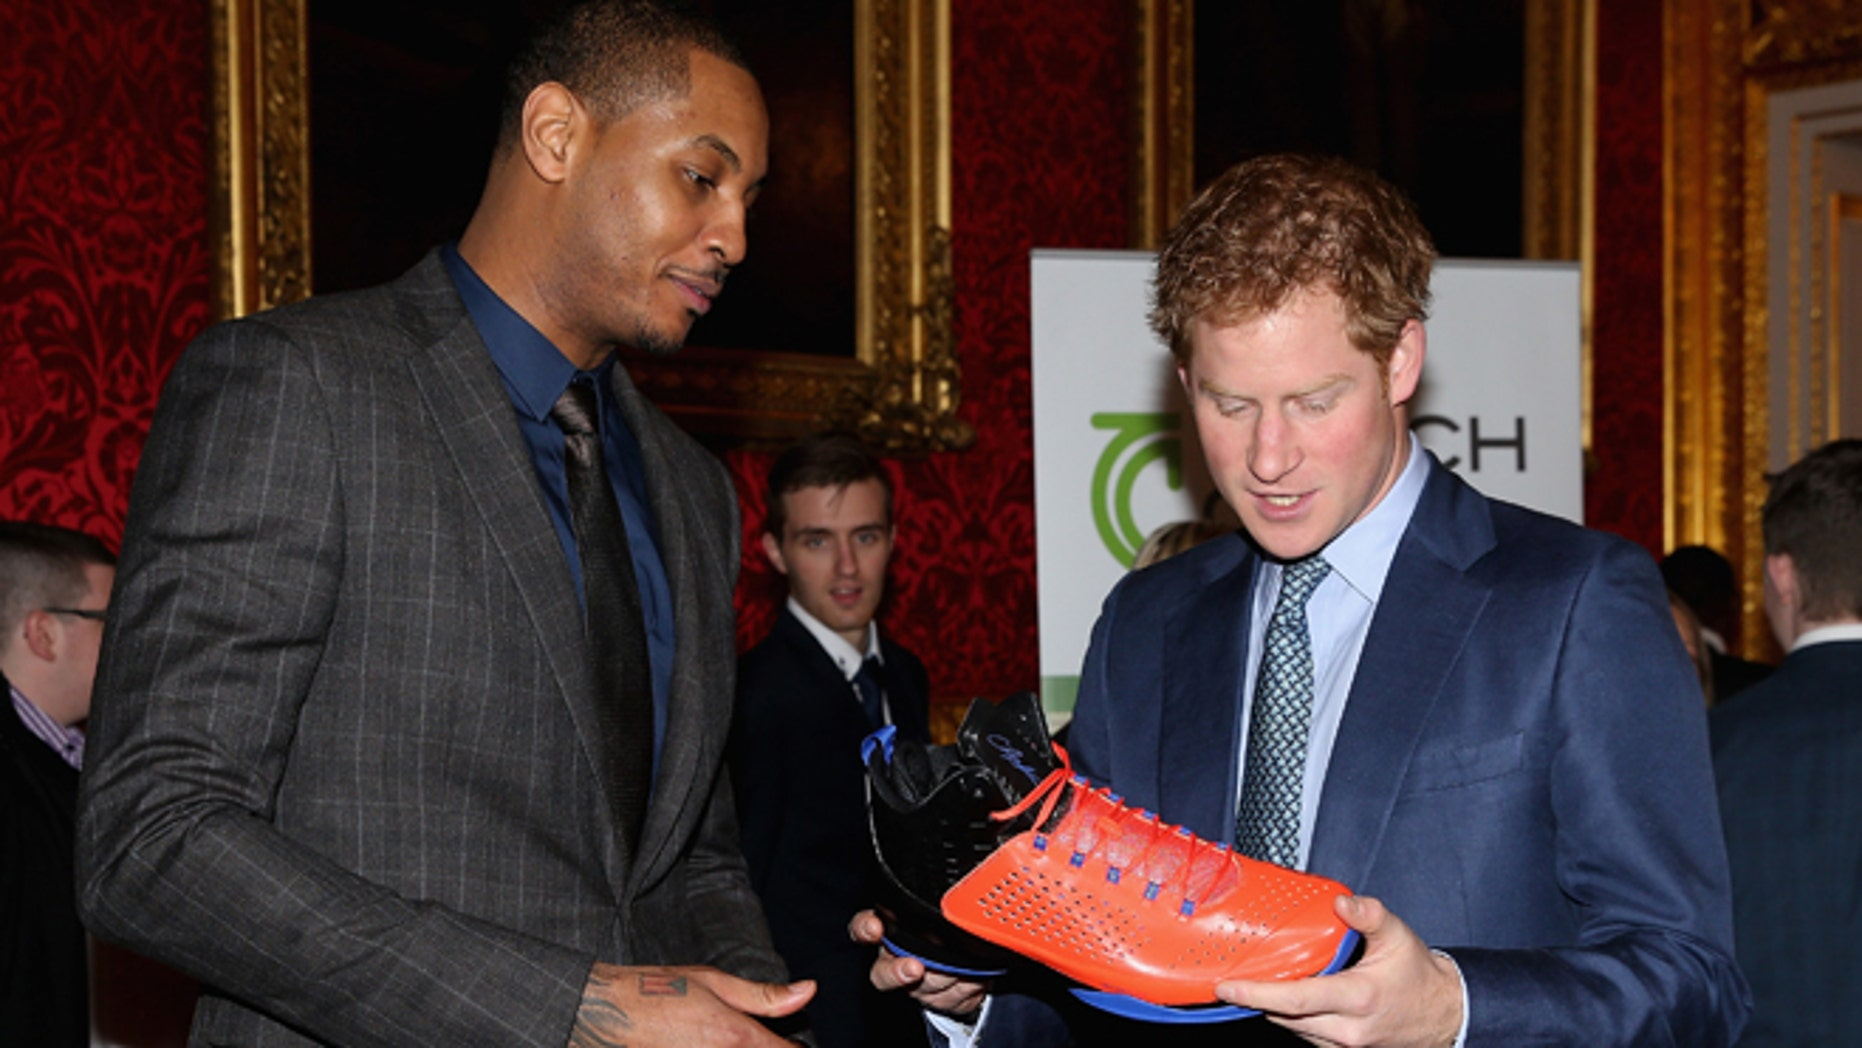 Britain's  Prince Harry, right,  is presented with a basketball shirt and size 15 basketball shoe by NBA All-Star Carmelo Anthony, during a Coach Core Graduation event at St James's Palace, in London, Wednesday, Jan. 14, 2015. The Coach Core model, a year's apprenticeship, aspires to produce well qualified sports coaches to work in the community. (AP Photo/ Chris Jackson, Pool)